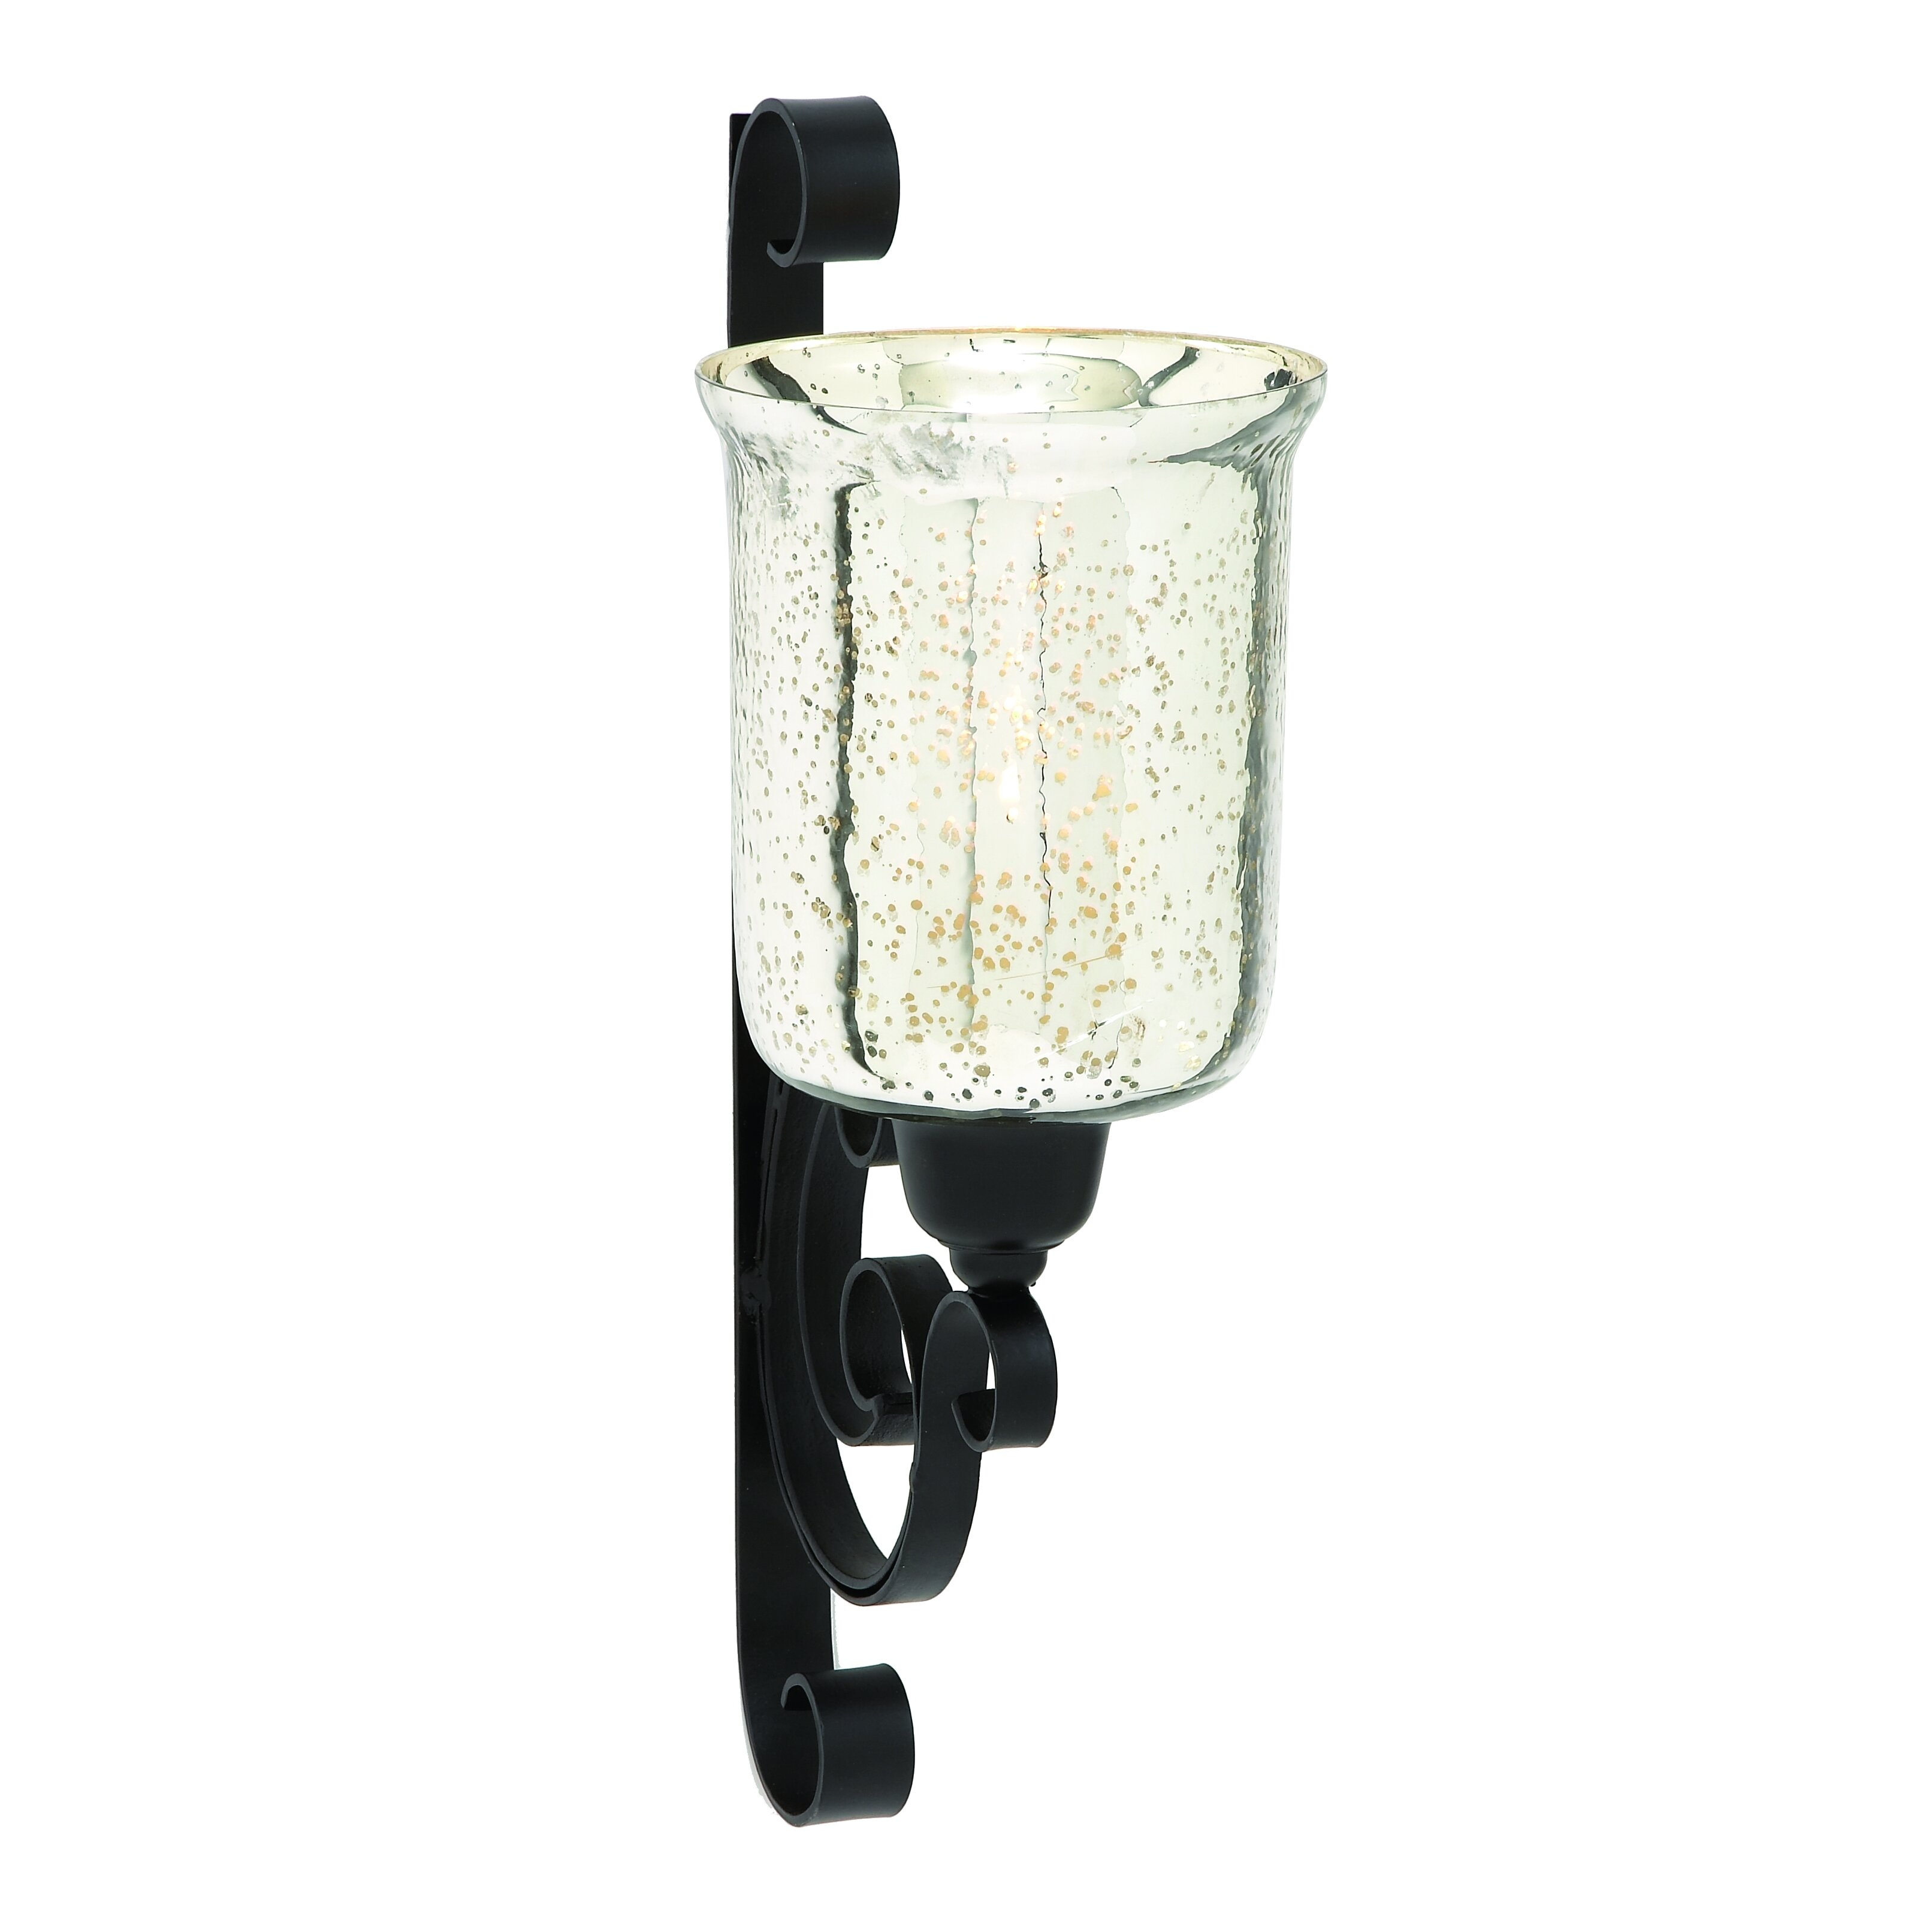 Wall Sconce Magnifying Glass : Woodland Imports Attractively Styled Indian Metal Glass Wall Sconce & Reviews Wayfair